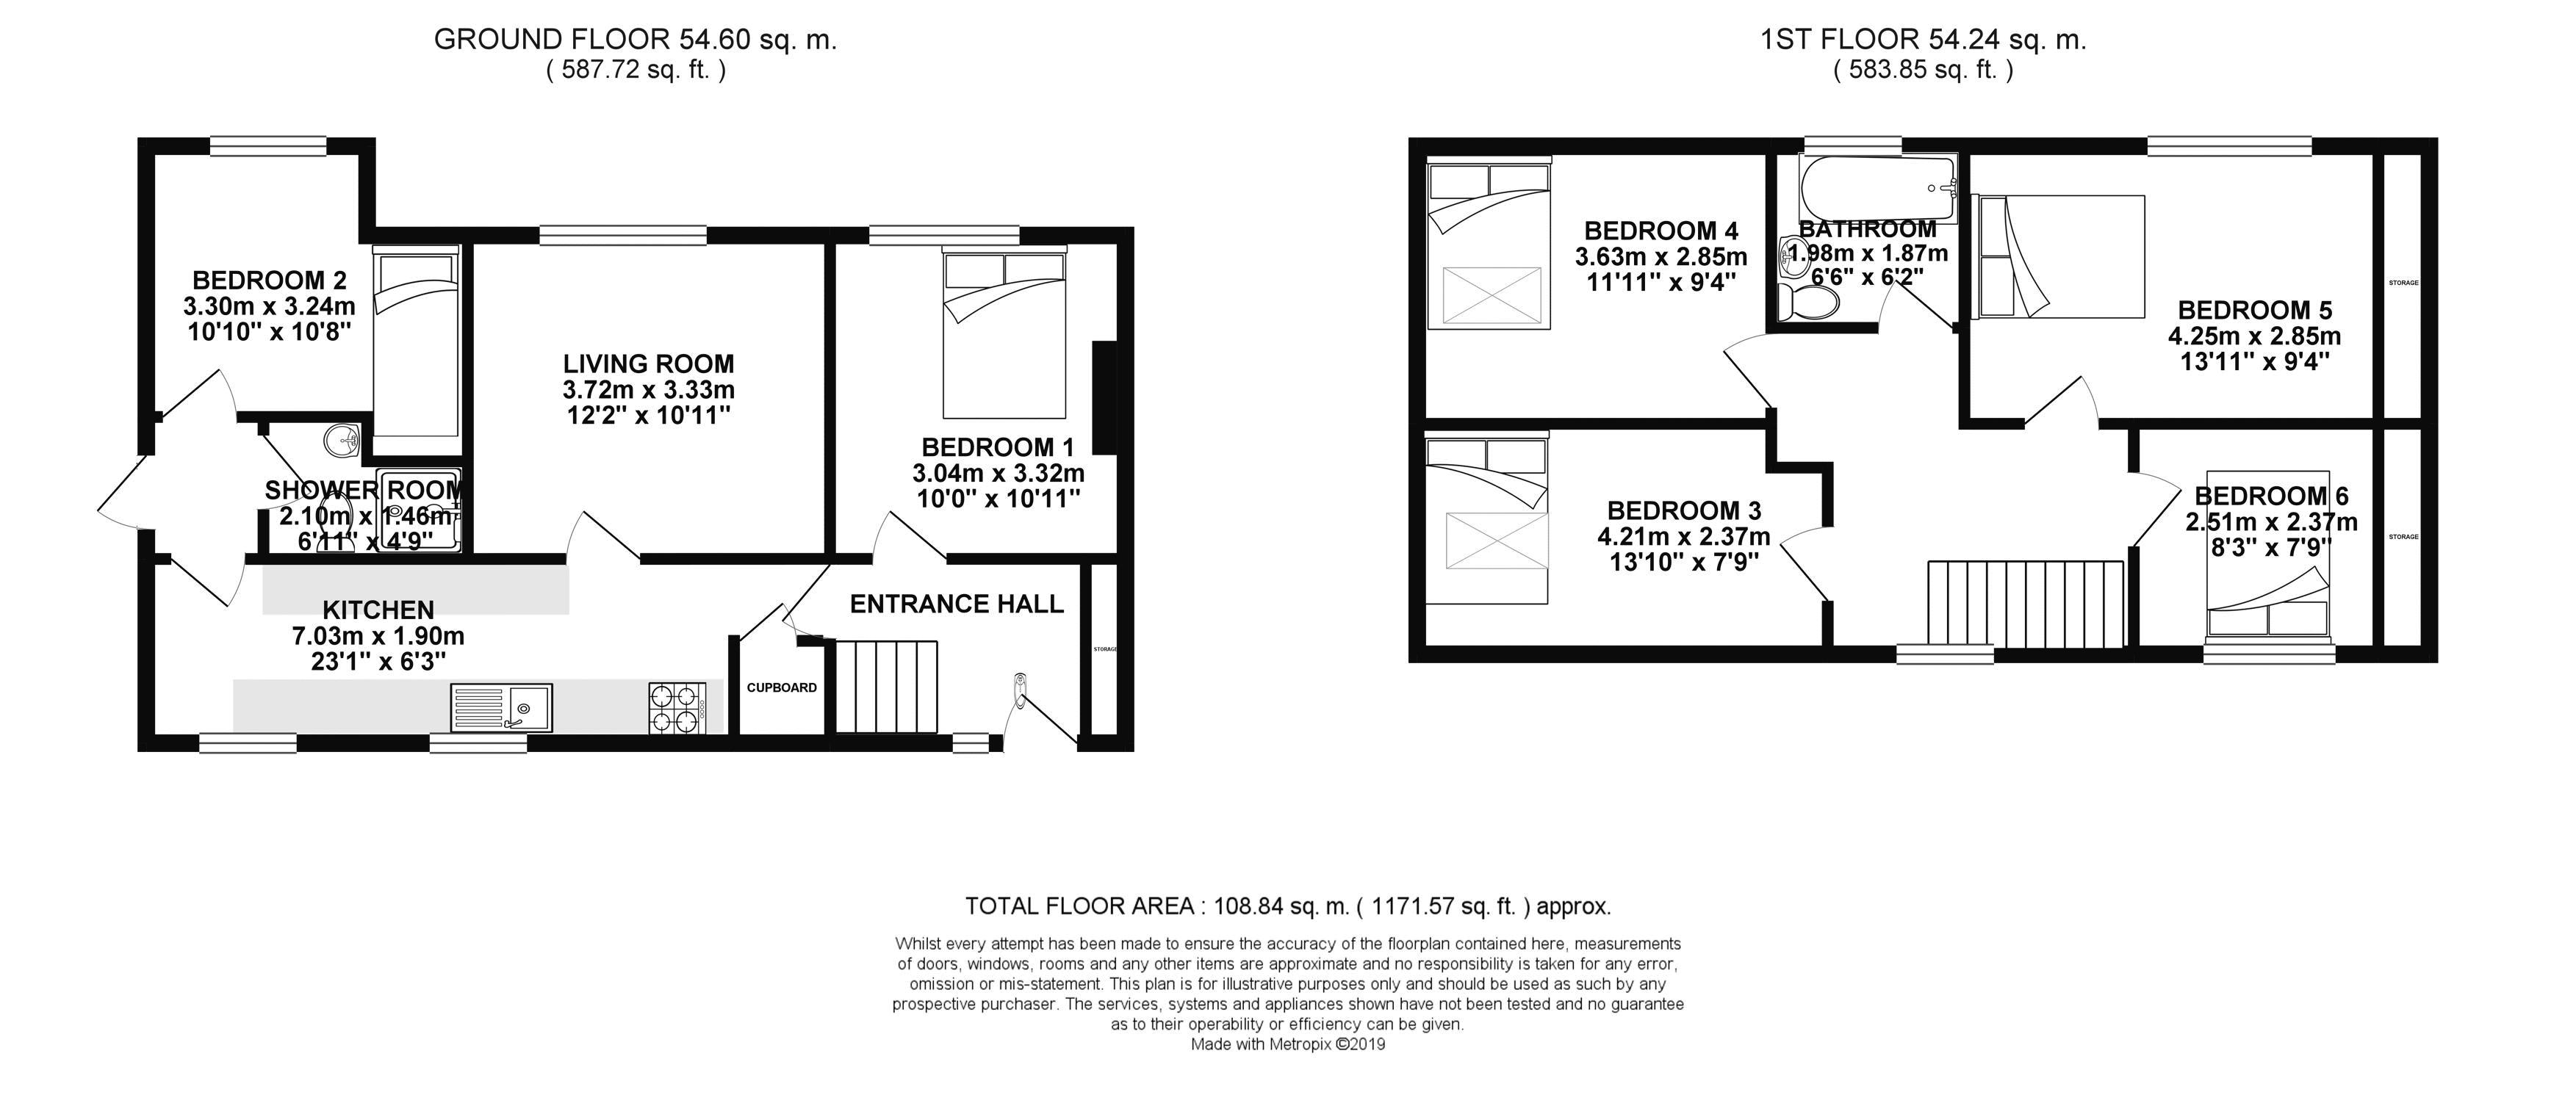 Floor plans for Halland Road, Brighton property for sale in Moulsecoomb, Brighton by Coapt